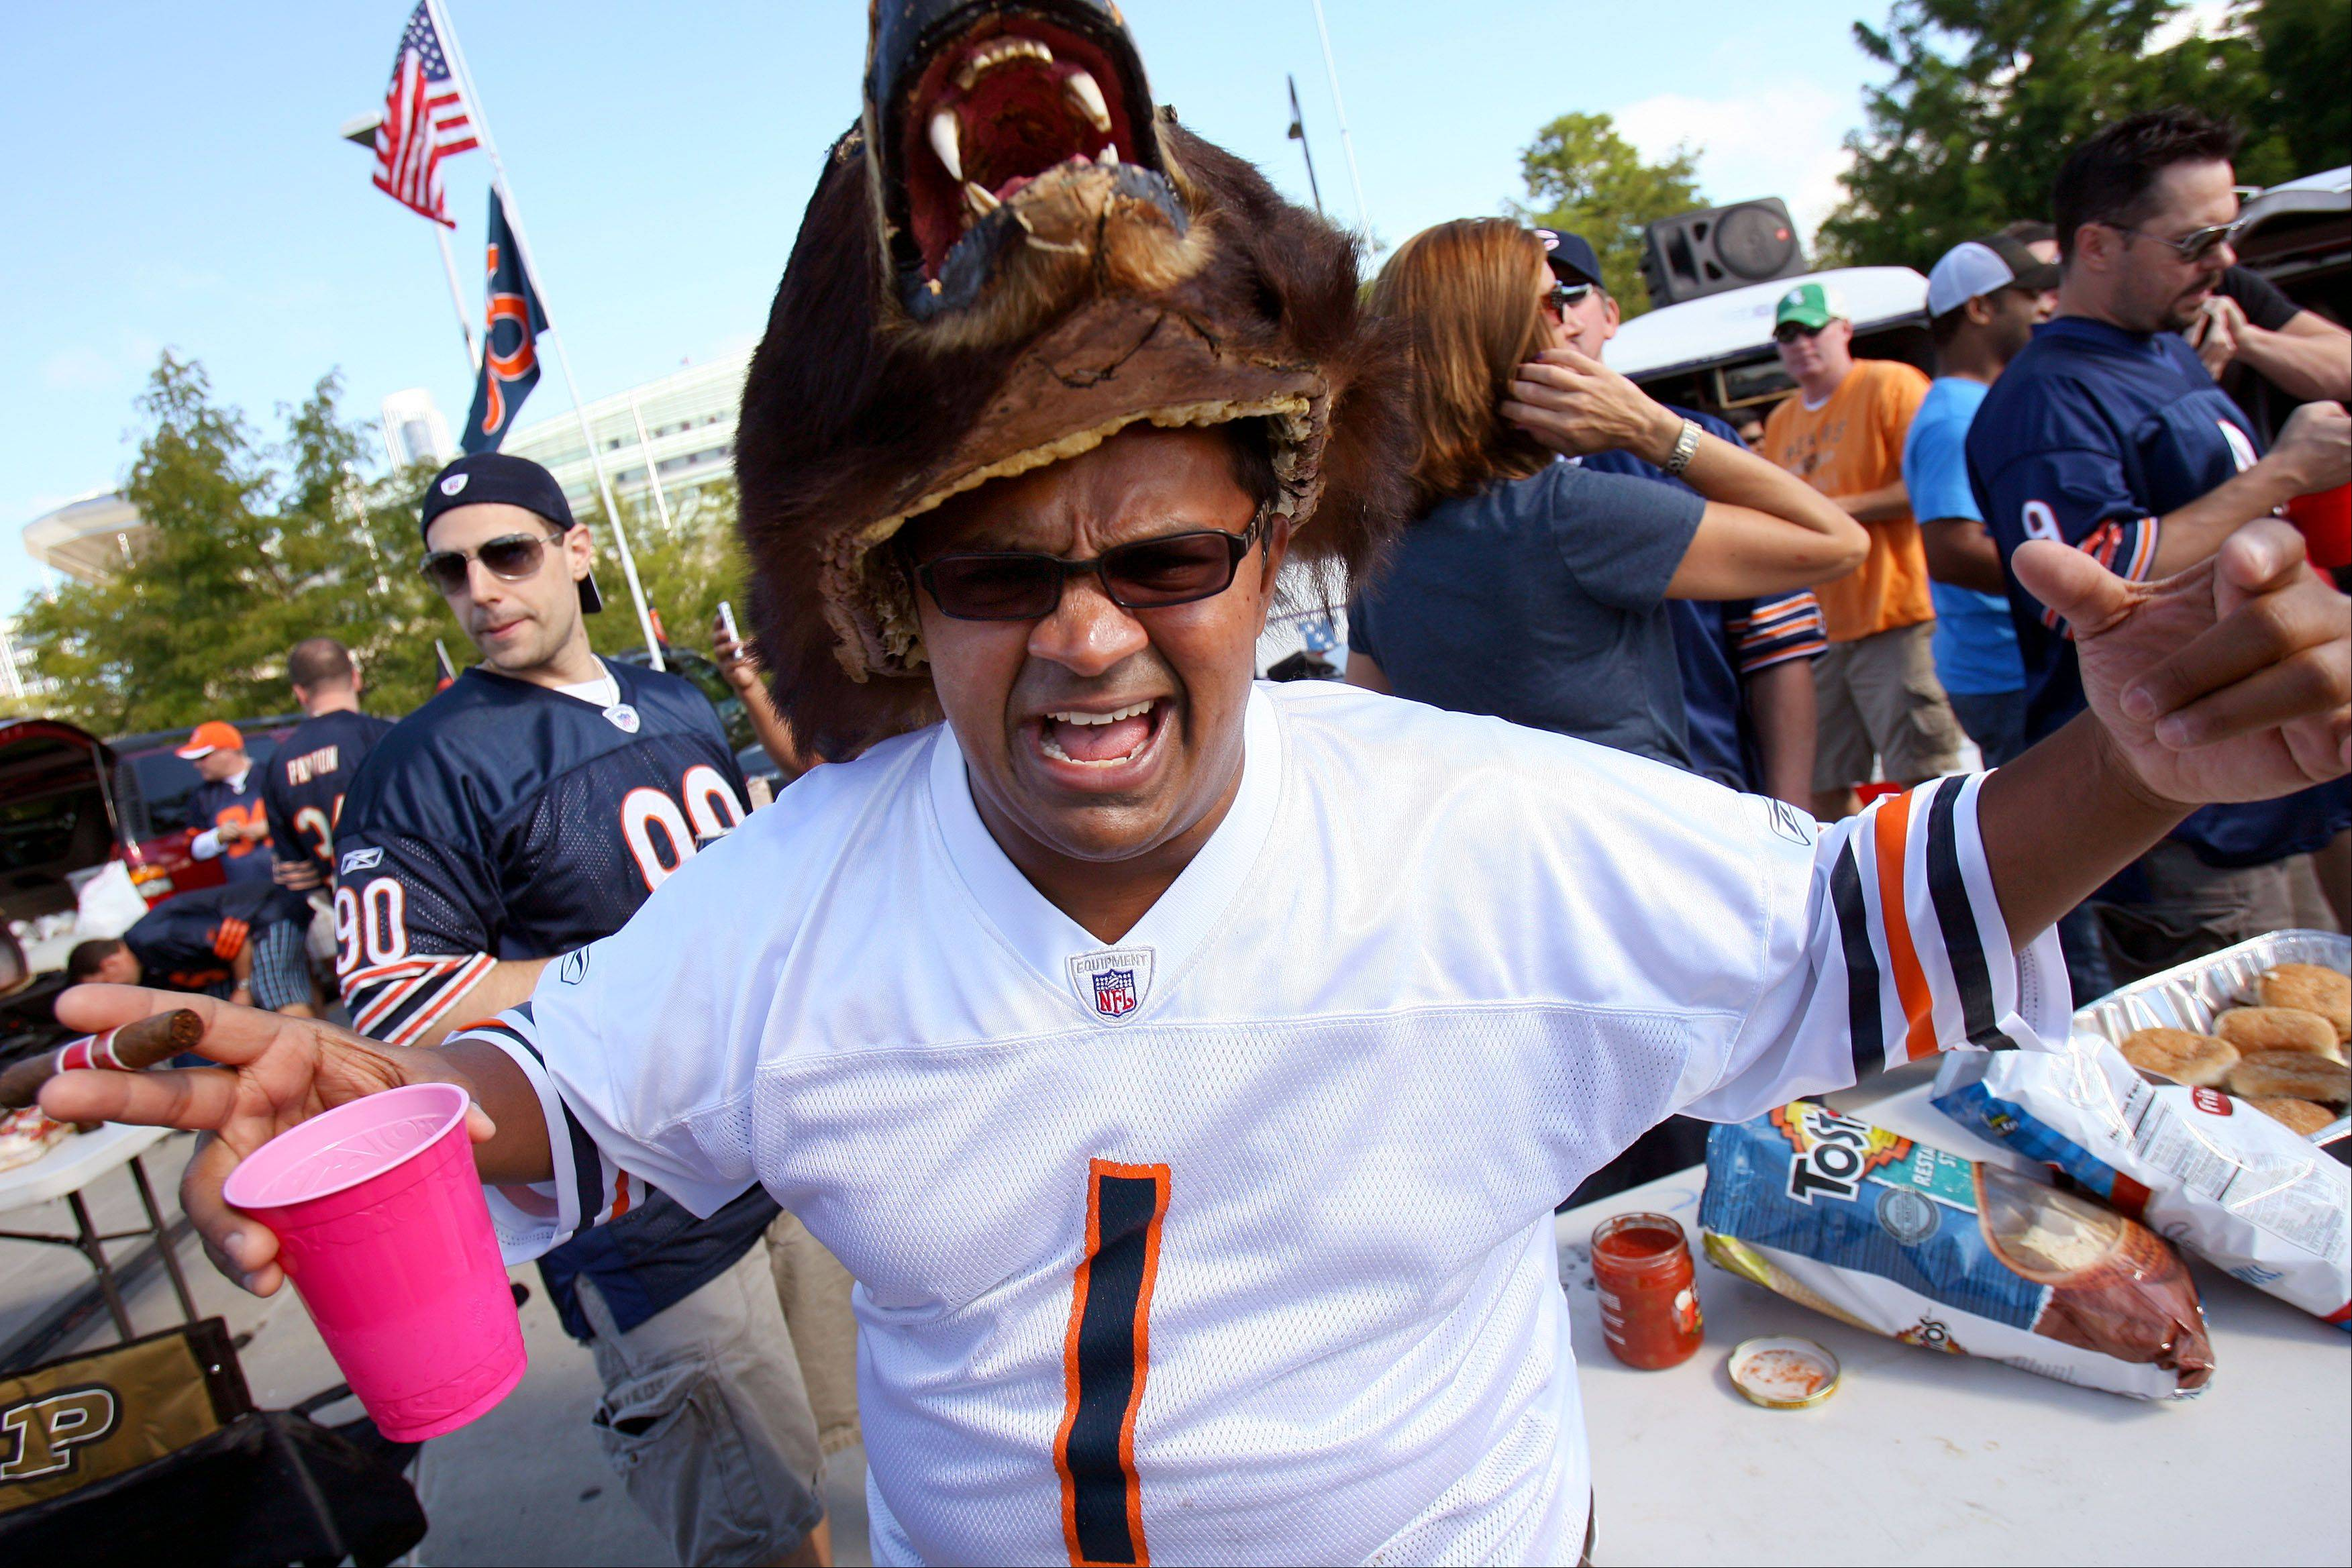 Sal Kahn of Naperville sports a bear hat as he tailgates on the Waldron Deck before the Bears season opener against the Indianapolis Colts Sunday at Soldier Field in Chicago.